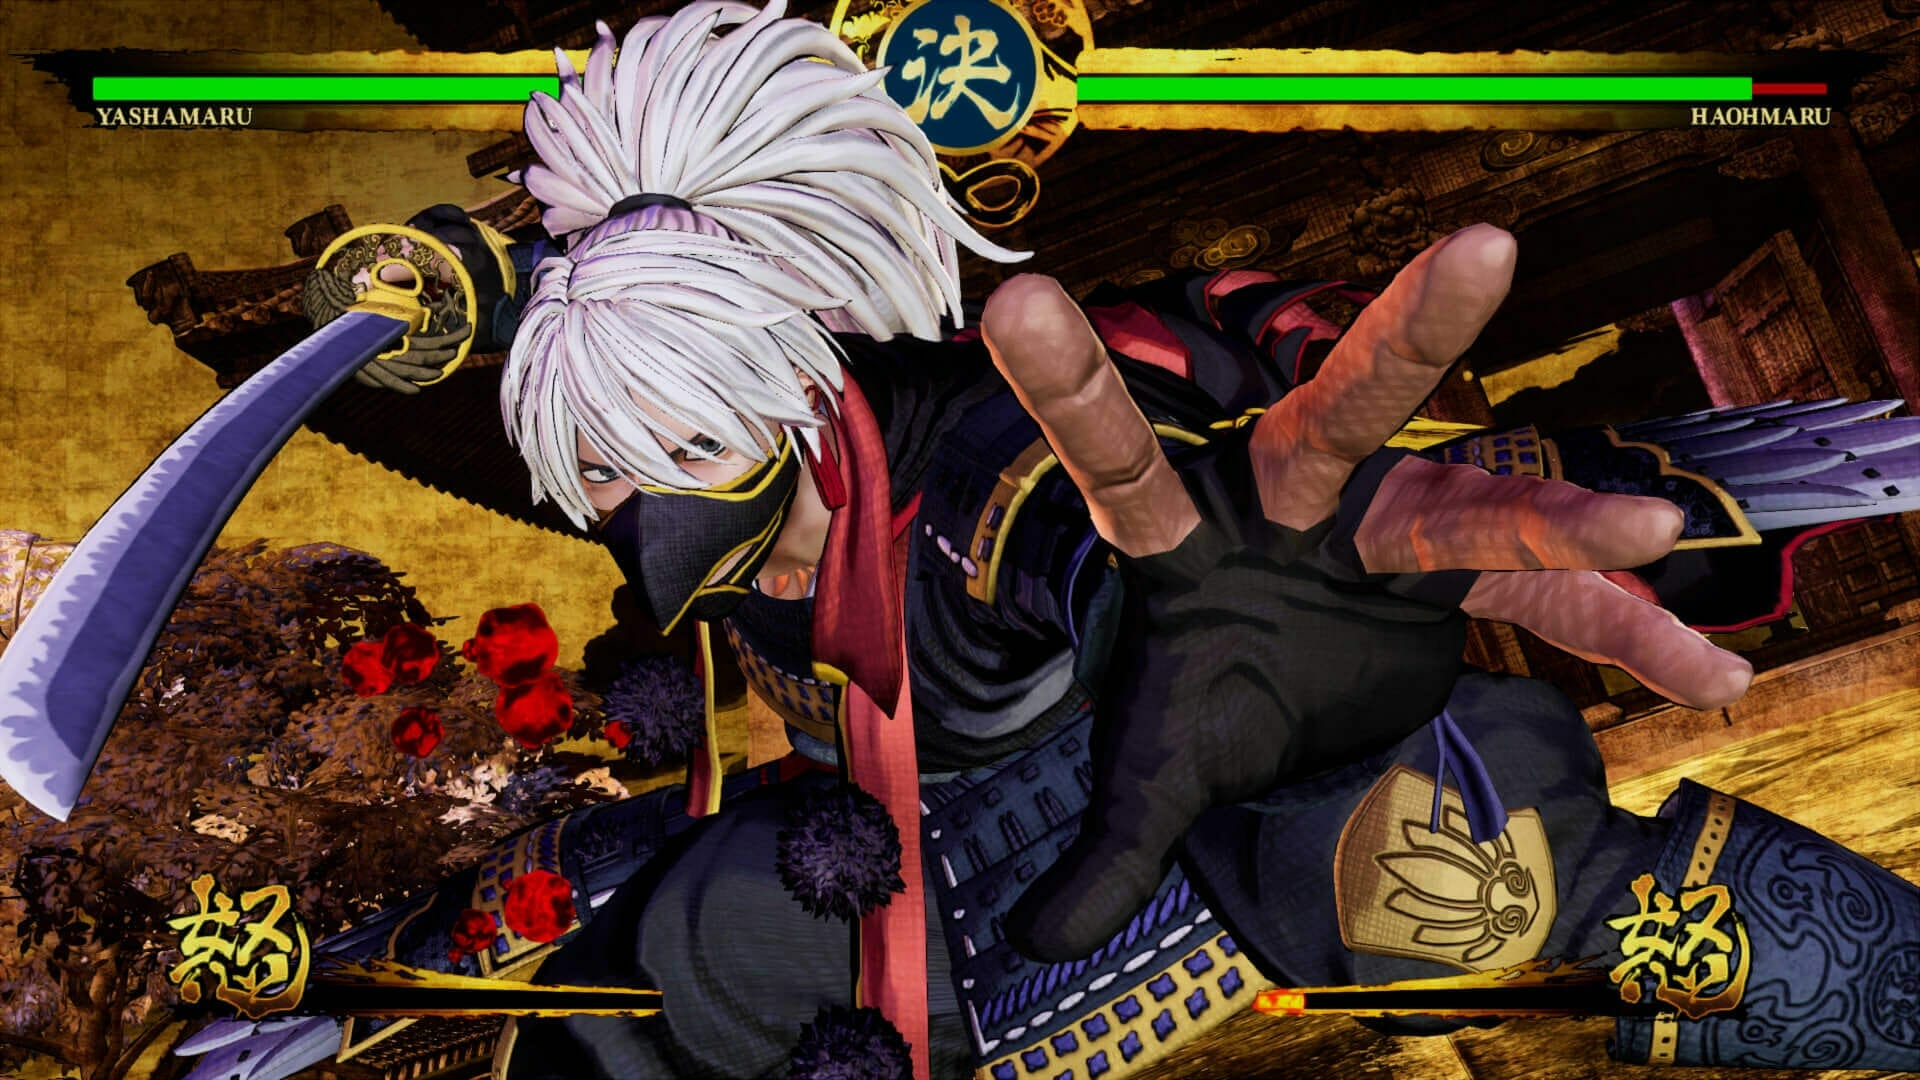 Change Samurai Shodown Resolution